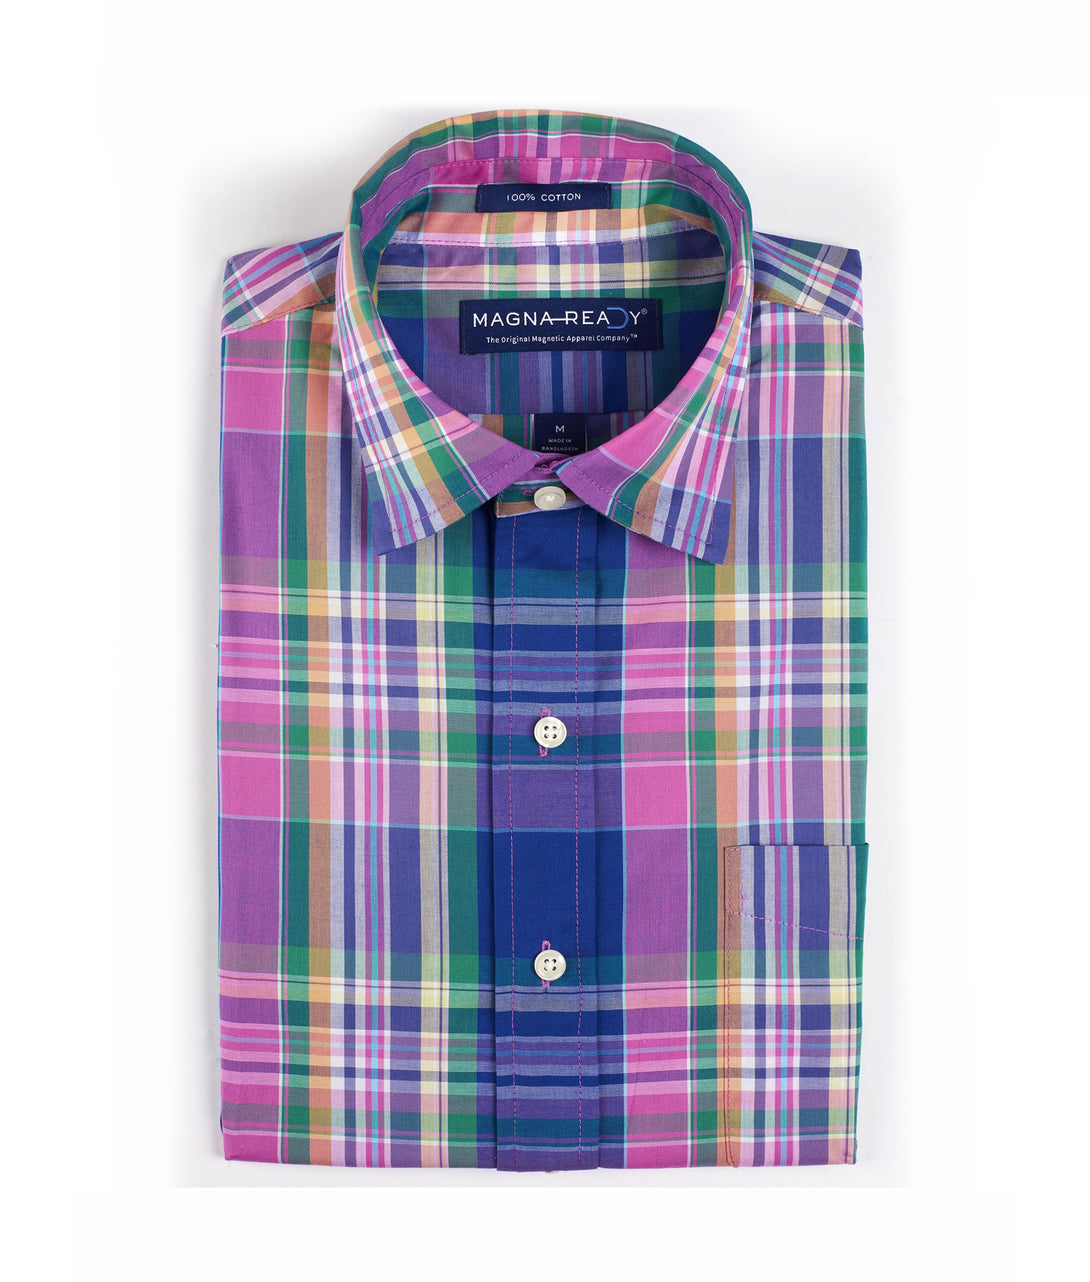 Solid Madras Inspired Pink Plaid Short Sleeve Shirt with Magnetic Closures | JUNIPERunltd